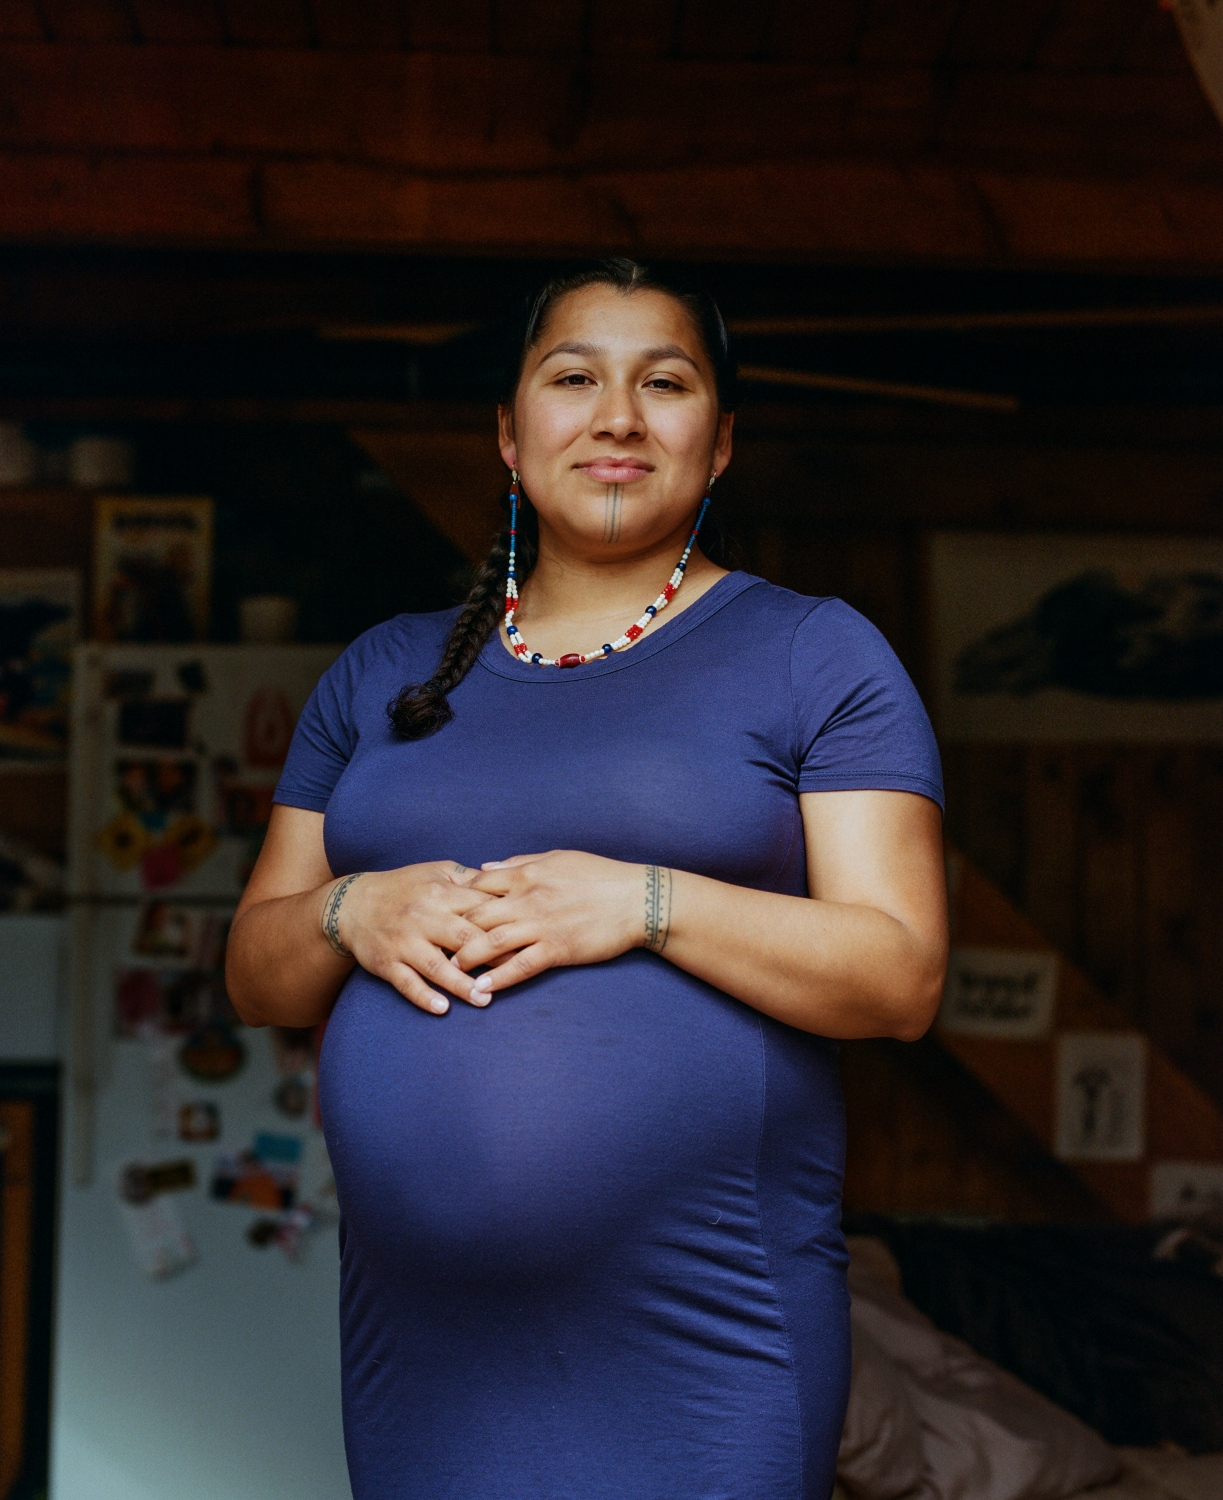 "Marjorie Tahbone inside her home in Fairbanks. Tahbone is a traditional tattooist who is currently working on her master's in Indigenous studies and writing her thesis on traditional tattooing and ceremony, with a personal lens on the tradition's connection to motherhood.  ""We as indigenous people have been through a lot in the last couple hundred years. I like to say that this was a tradition that went to sleep. It was something that was put away for a little bit during a rough time in our history, but it wasn't gone. It was there, on some level, whether it was through photography images or through stories, and it is being reawaken during this time of healing not just for the Inuit women who have been involved in it but for the entire community. And there have been people who have been unsure of this movement, maybe a little scared of how it will be interpreted by other people, non-indigenous people, because there still is this underlying oppression that's continually occurring within our communities from non-Native people and Native people—lateral oppression and lateral violence is a real thing that's happening right now and we are working through it. And we are healing from the historical trauma. And one of the ways that we are doing it is through the revitalization of our traditions and our languages. The tattooing is one that's taken a huge wave of awesome energy all across Inuit country. I've never seen anything quite like it as far as reviving our traditions because it really has taken the entire circumpolar north with Canada, Greenland, and Alaska coming together and working on this movement. Each of the reasons vary –they vary between each woman, they have their own personal stories that go with it, but the underlying foundational meaning is strength, is identity, it's about who we are as Inuit people and that we are still here today. We're still present, we're still going to be , we're not going anywhere and this is a tradition that's here to stay. It's something that's pretty powerful when you think about it,"" she says."